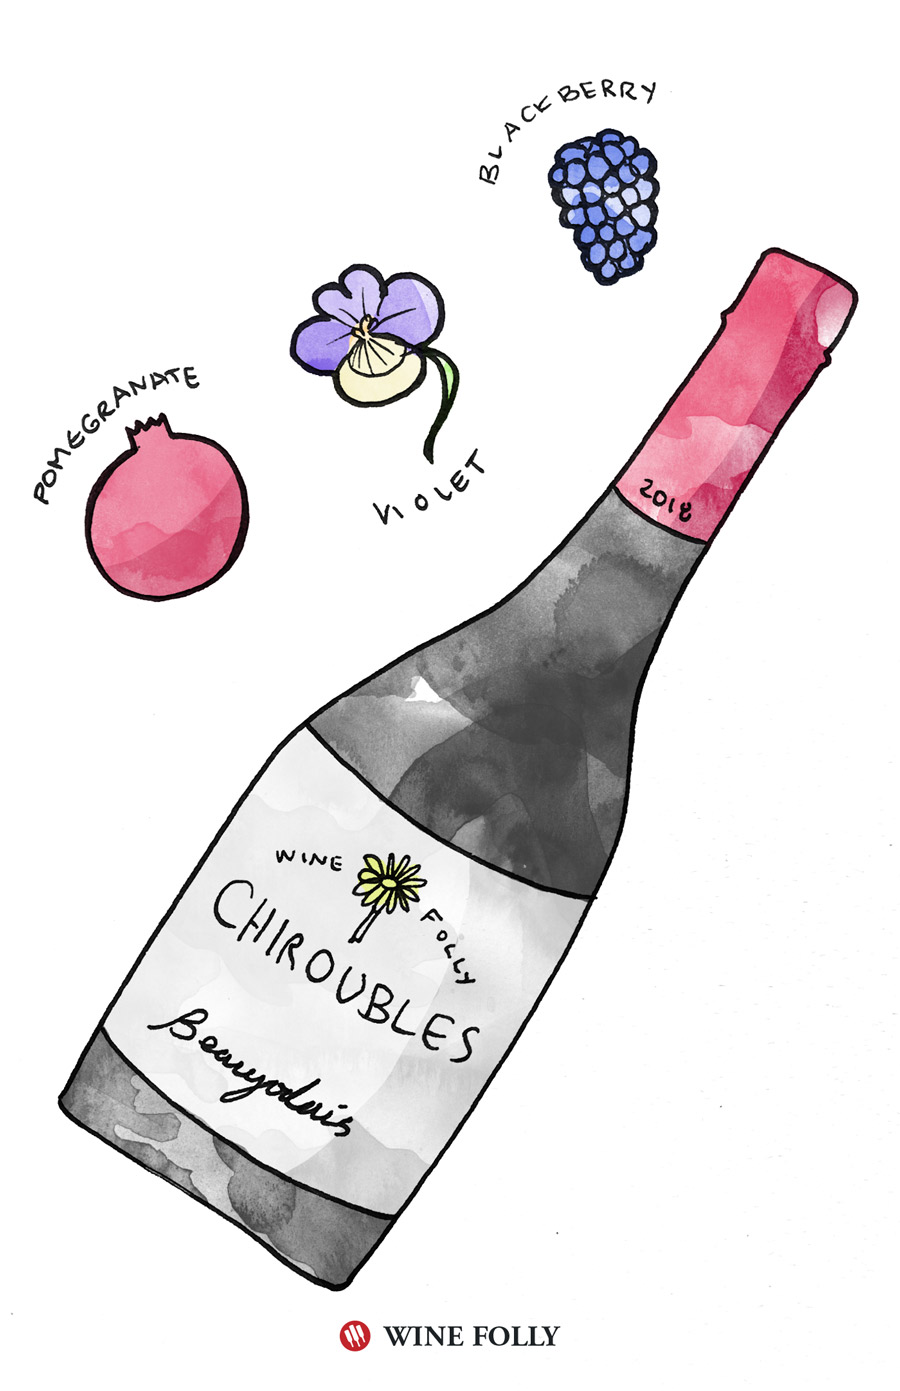 Beaujolais Tasting Notes Illustration by Wine Folly